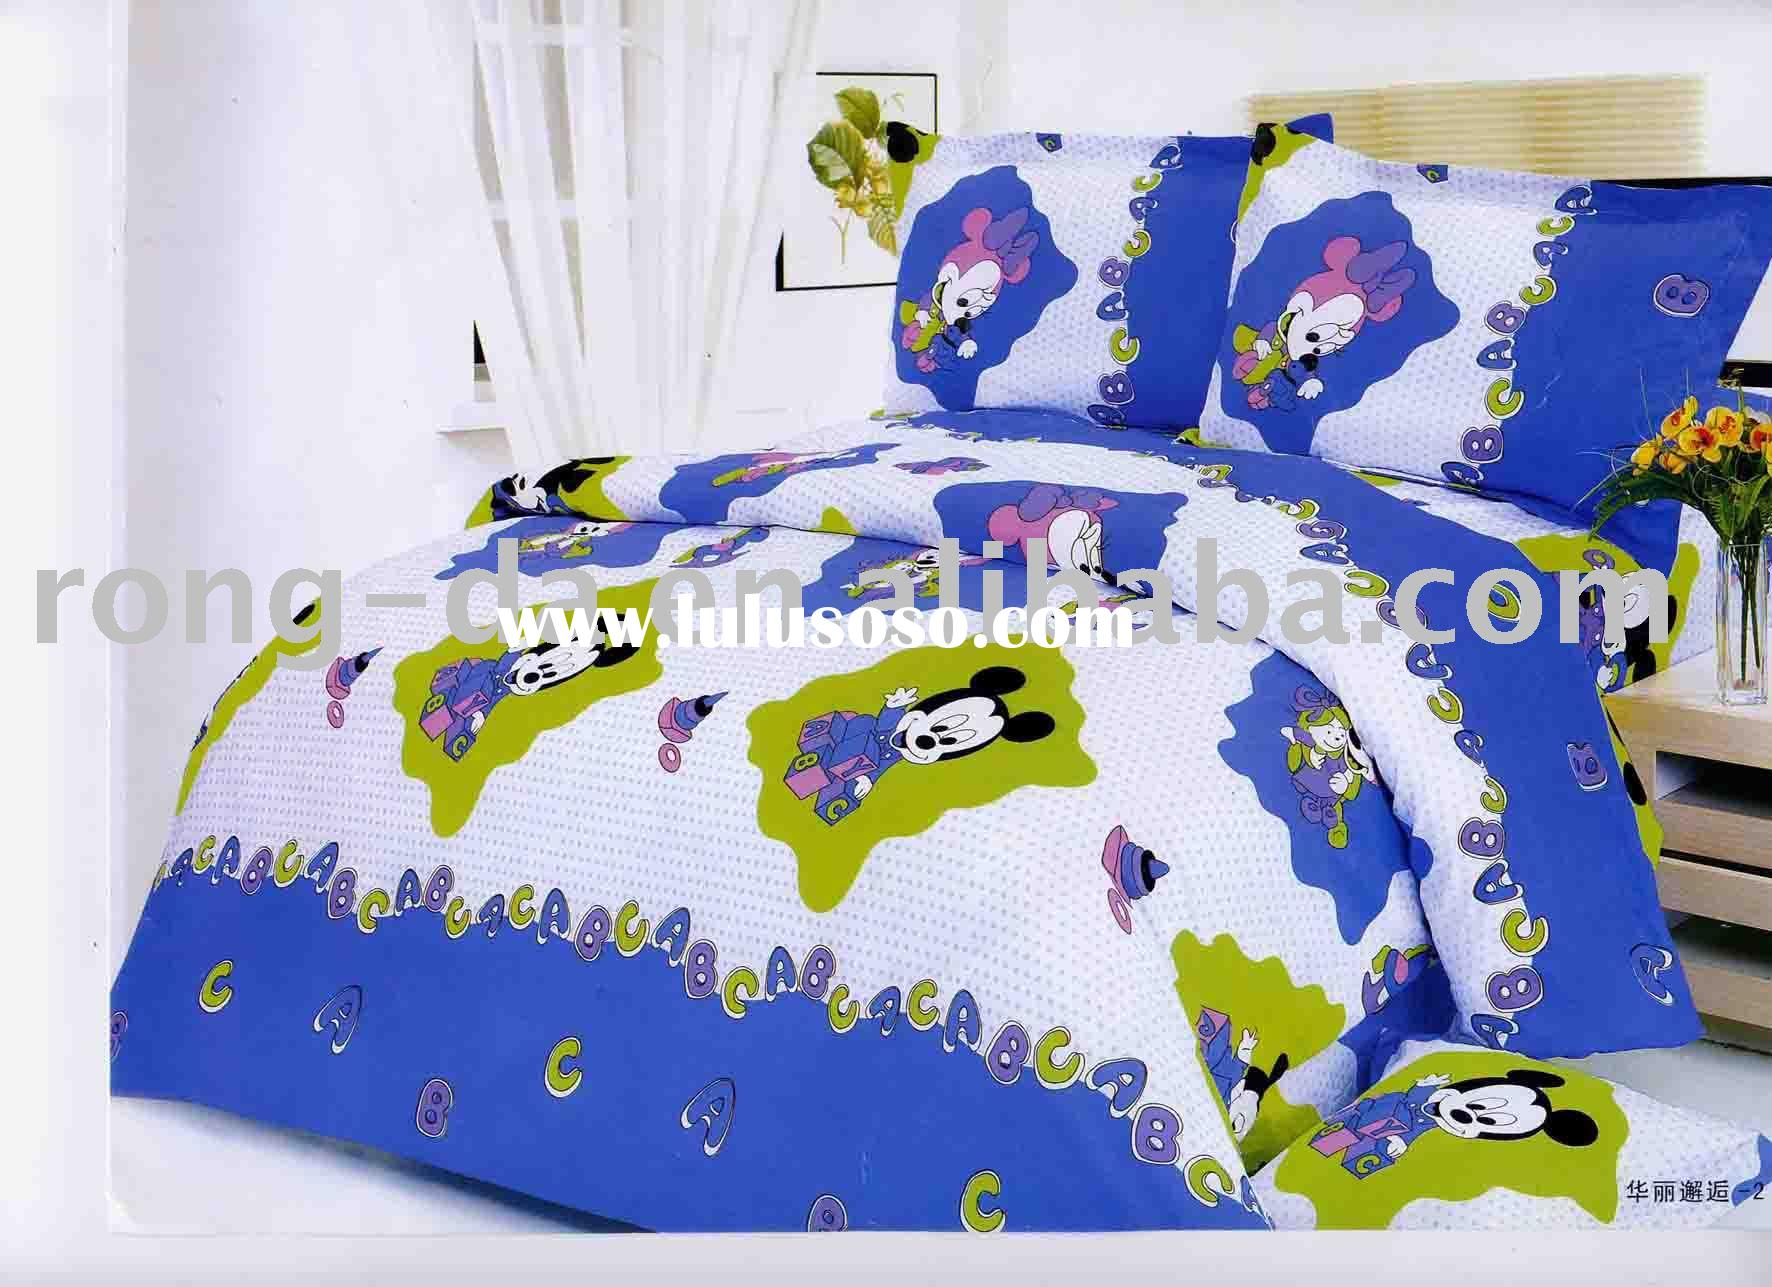 Bedding Set/Printing 4pcs sets/quilt cover/pillow case/Children/bedding/textile